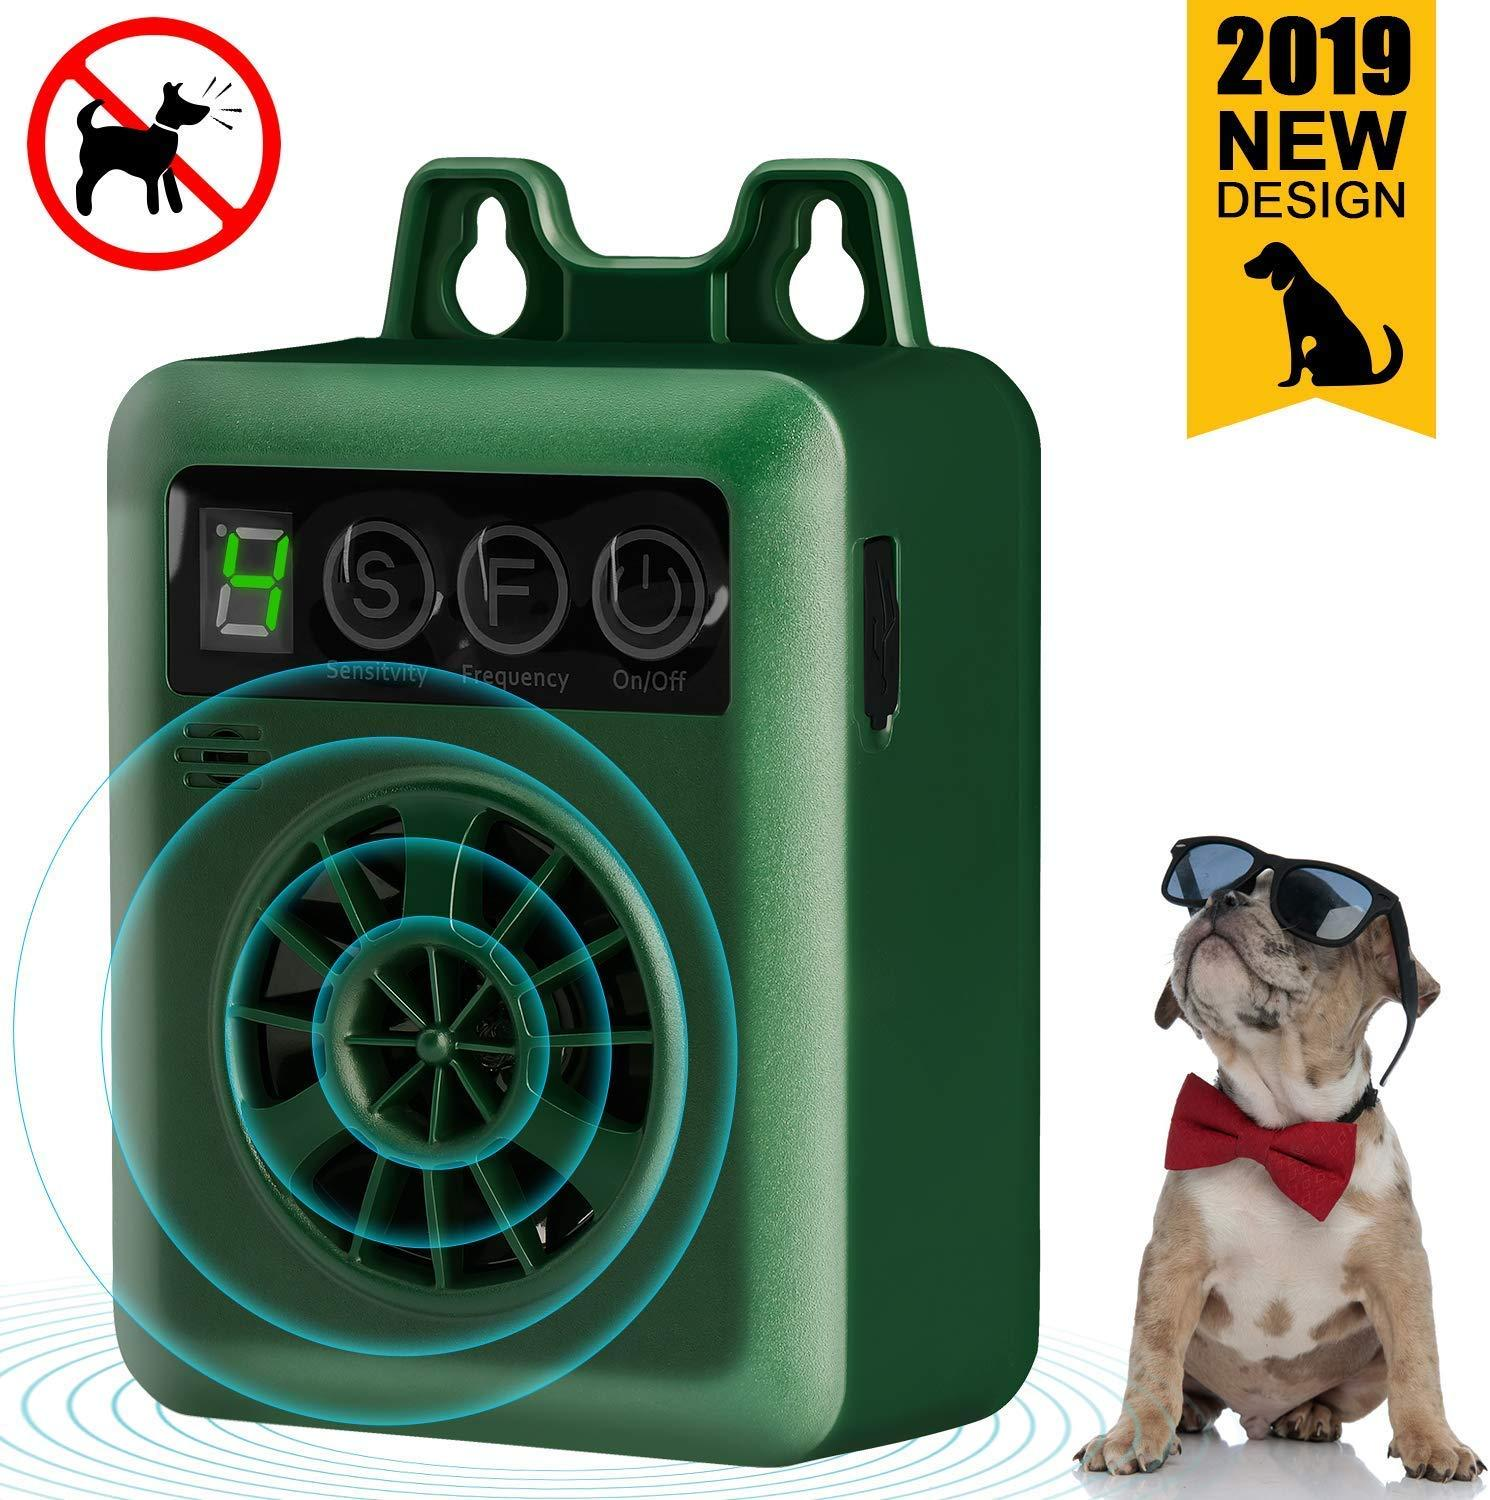 Pet Dog Ultrasonic Bark Control Device Anti Barking Stop Rechargeable LED Repeller Outdoor IndoorStop No Bark Training Device